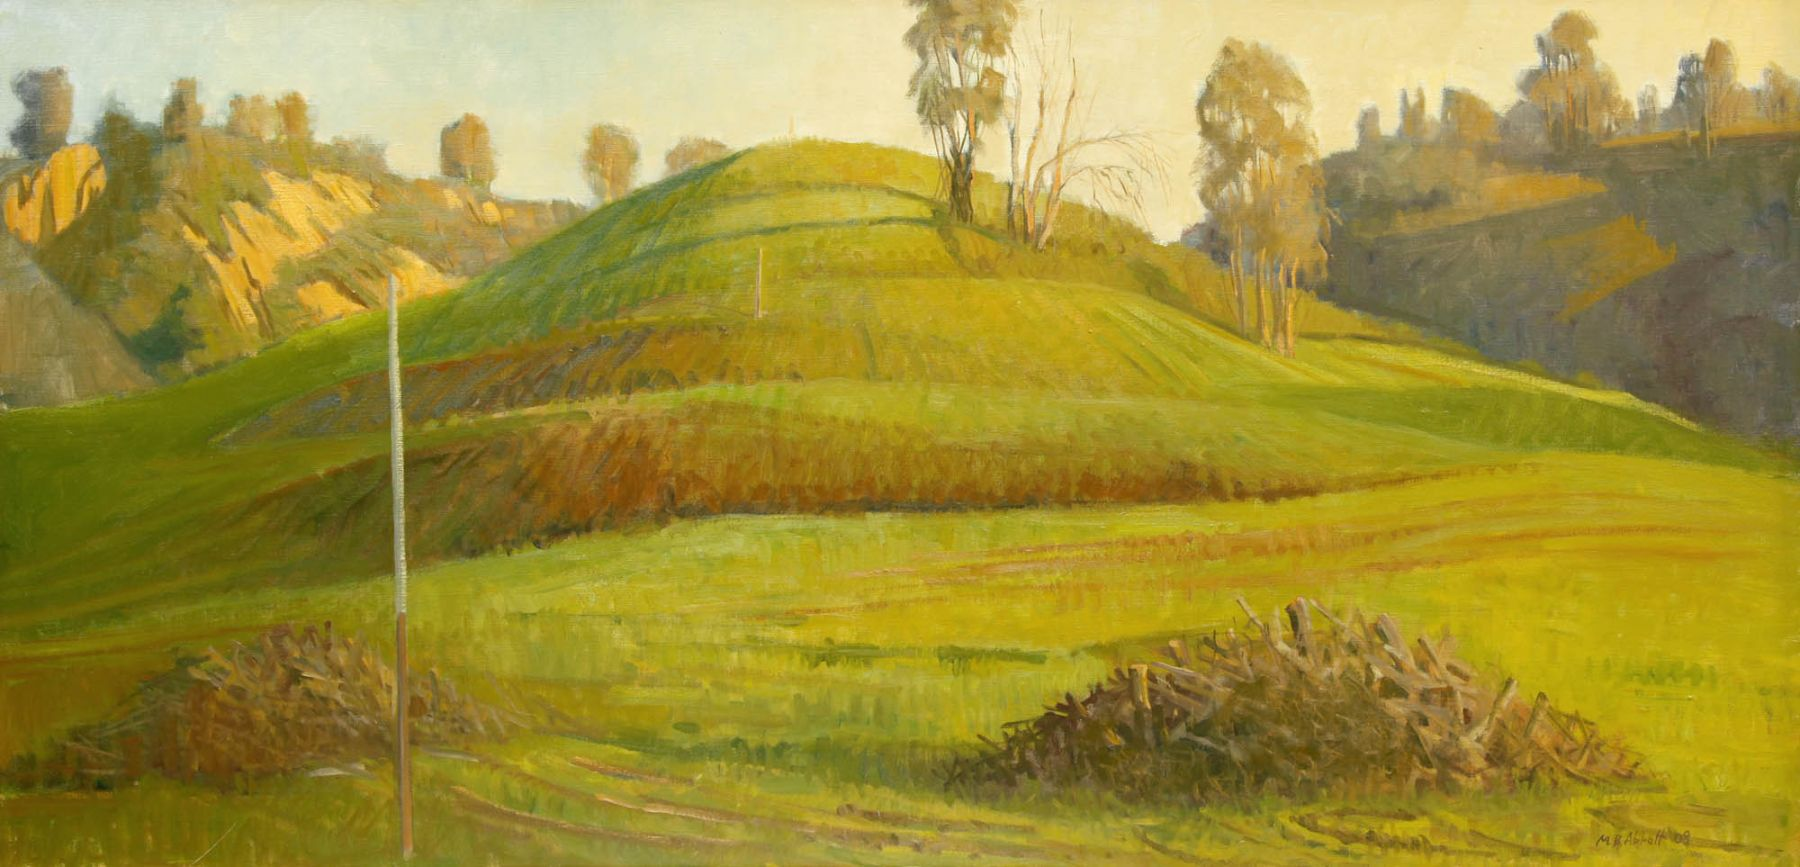 Meredith Brooks Abbott, Hill with Poles, 2008